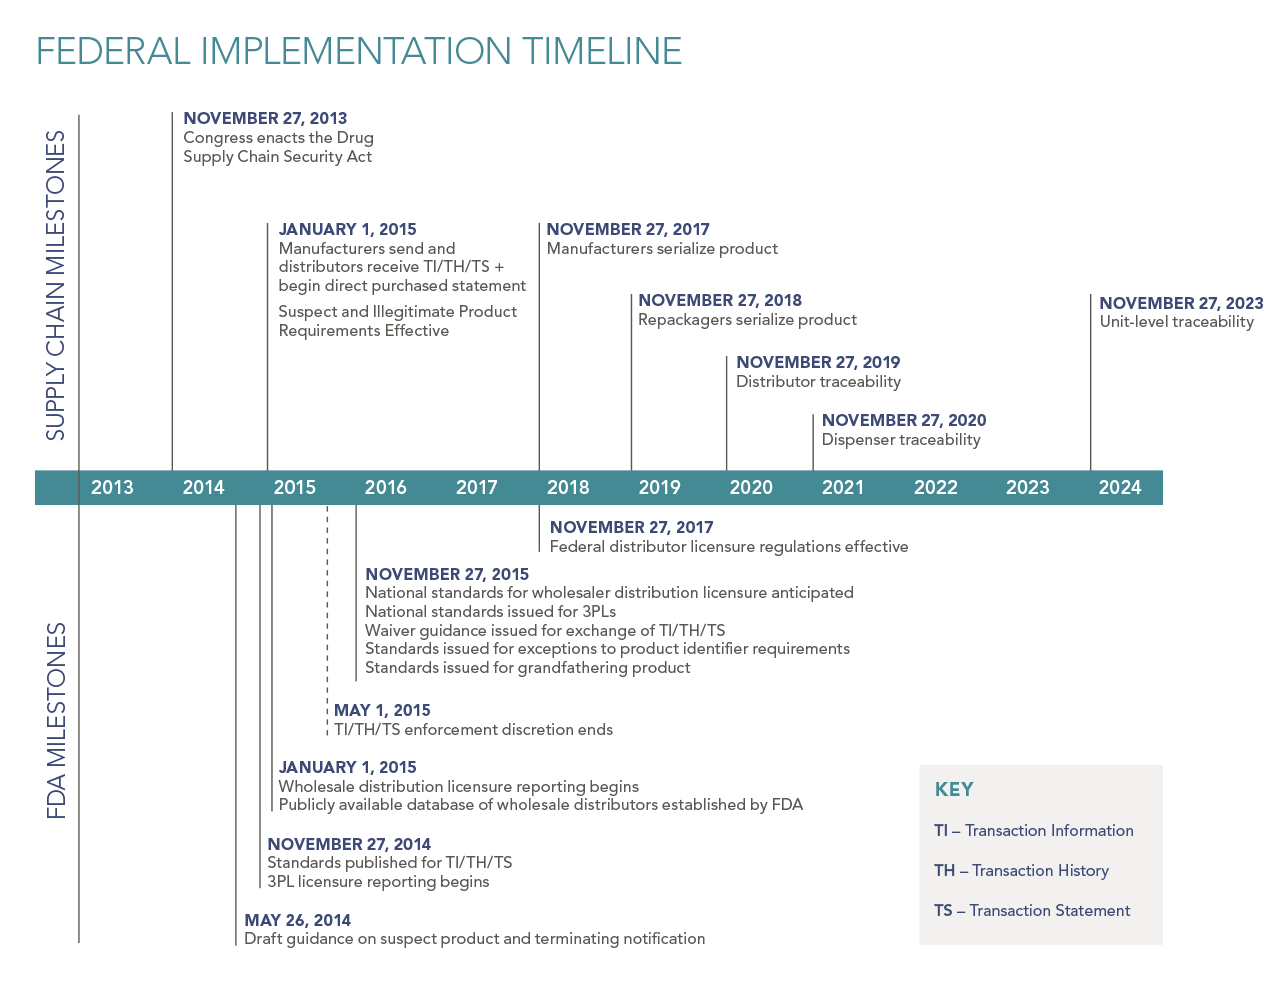 Traceability Timeline